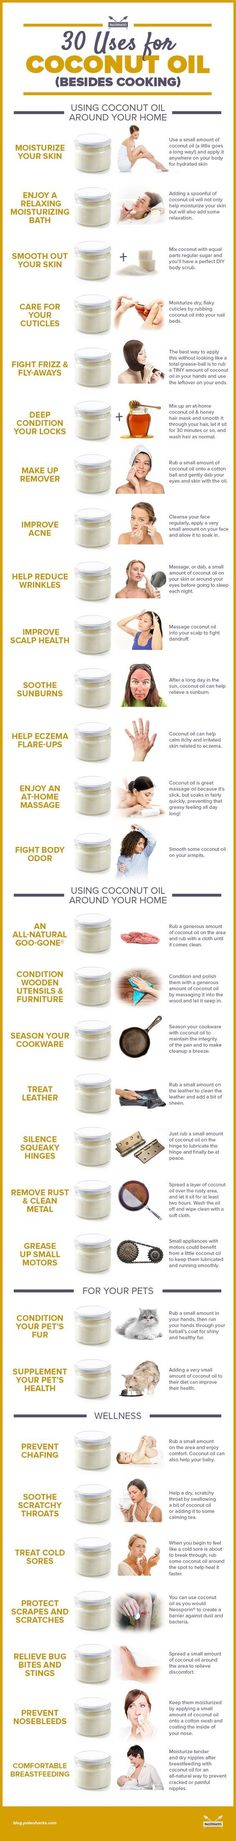 30 uses for coconut oil that don't involve cooking